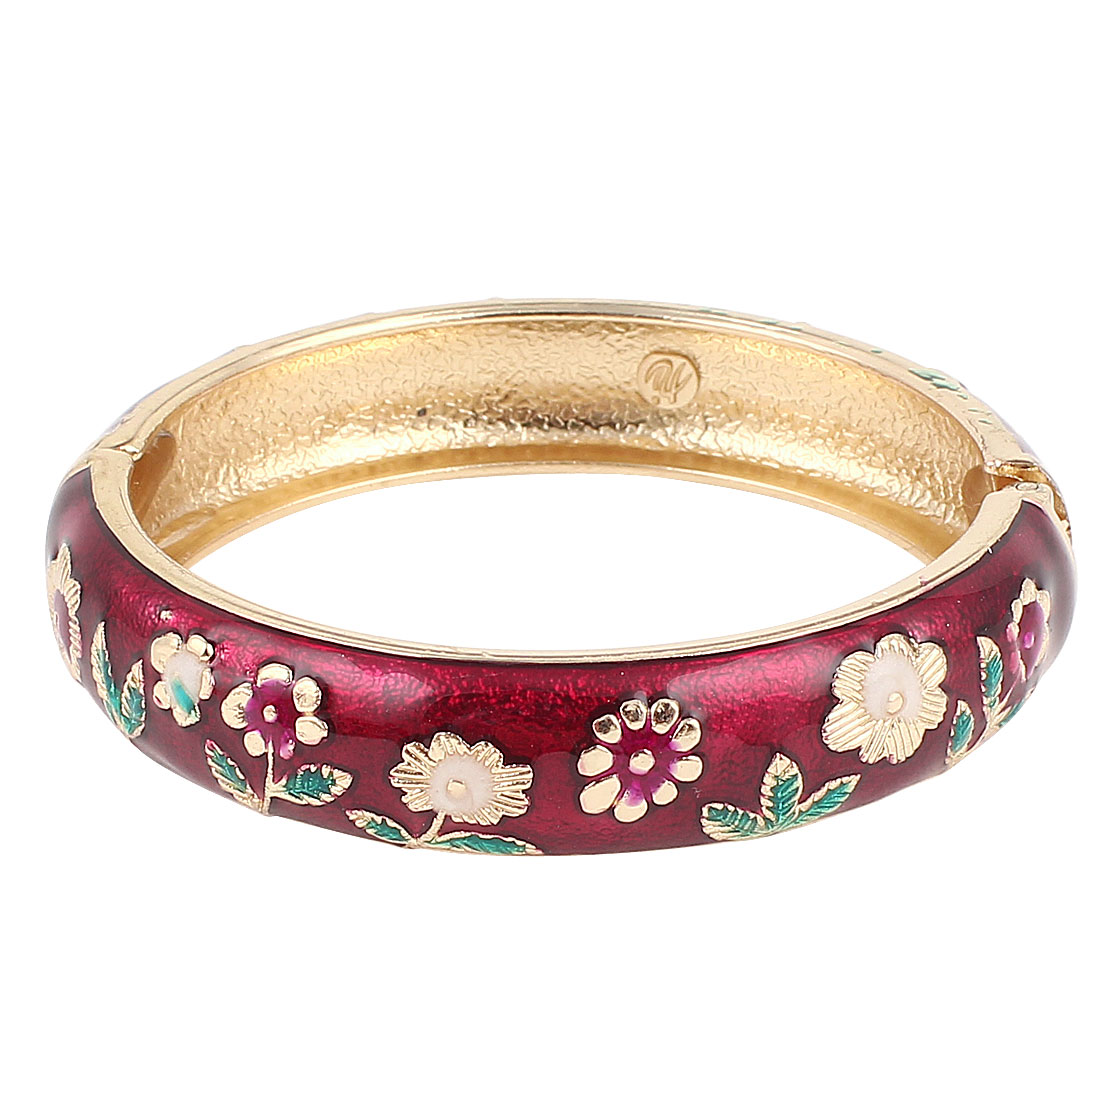 Lady Girl 2.8-inch Dia Burgundy Hinge Wrist Enamel Bracelet Bangle